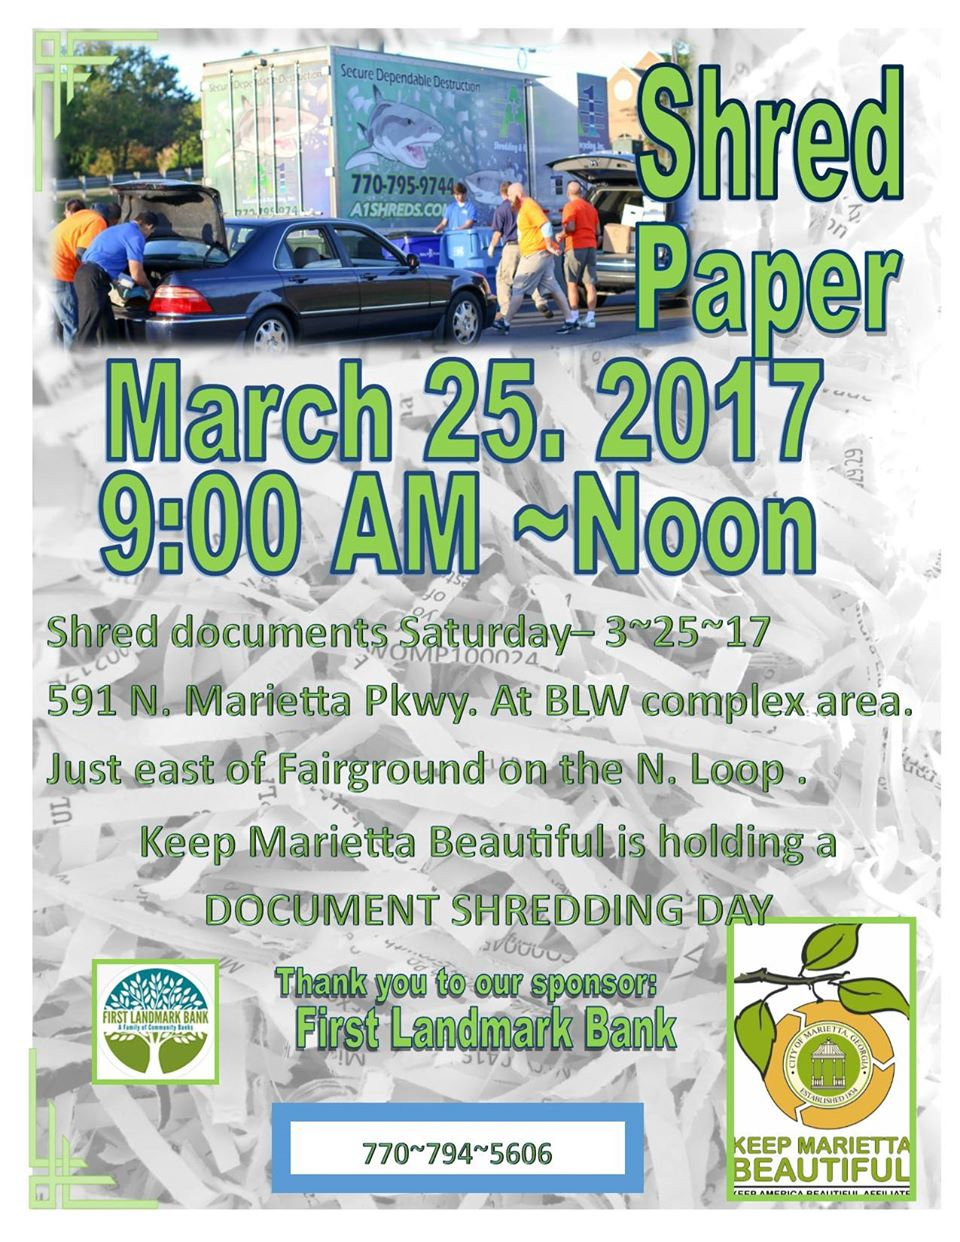 Marietta Shredding Event